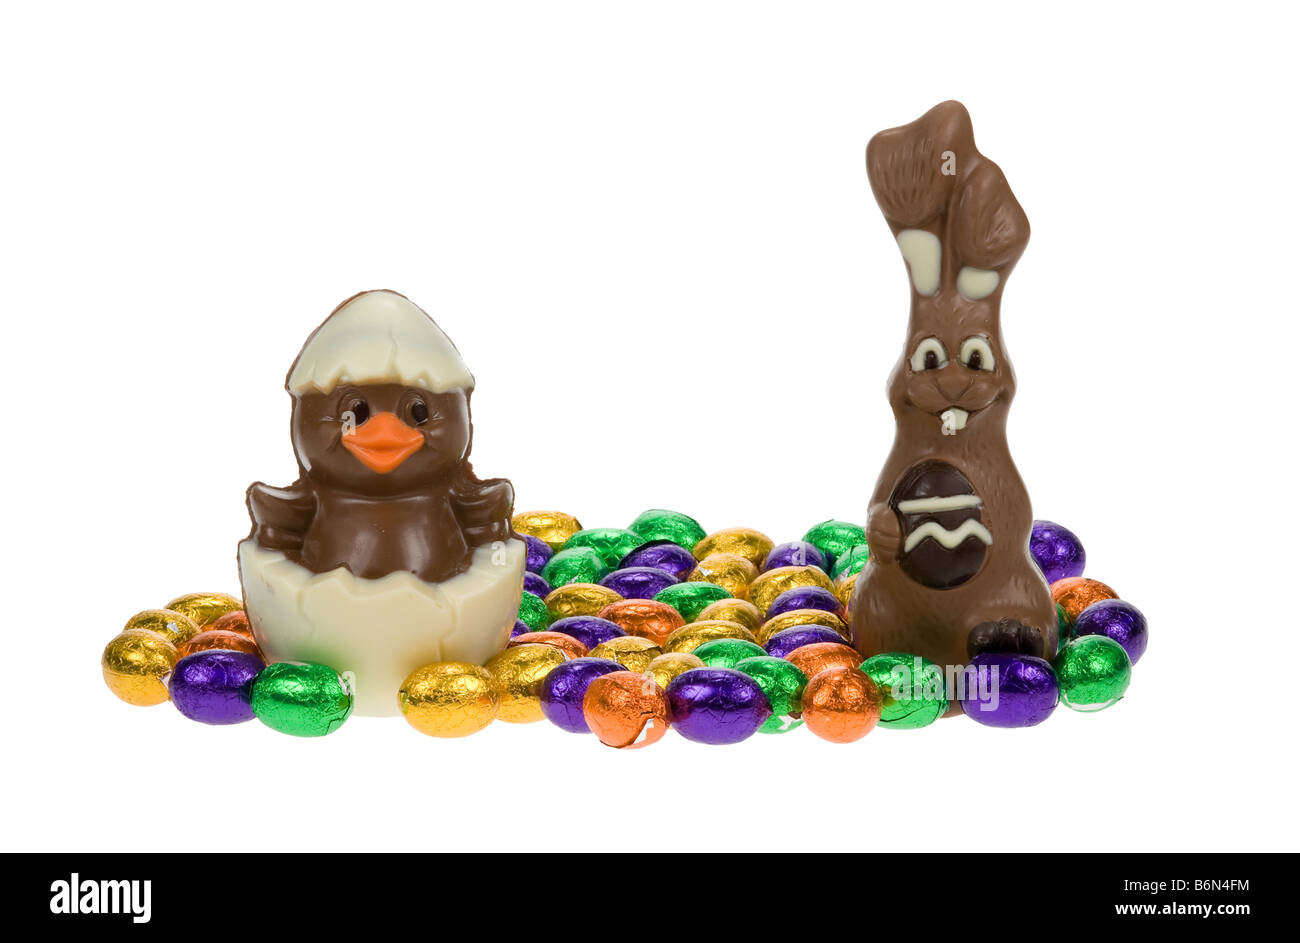 cute easter bunny and chick surrounded by chocolate easter eggs isolated on a white background - Stock Image